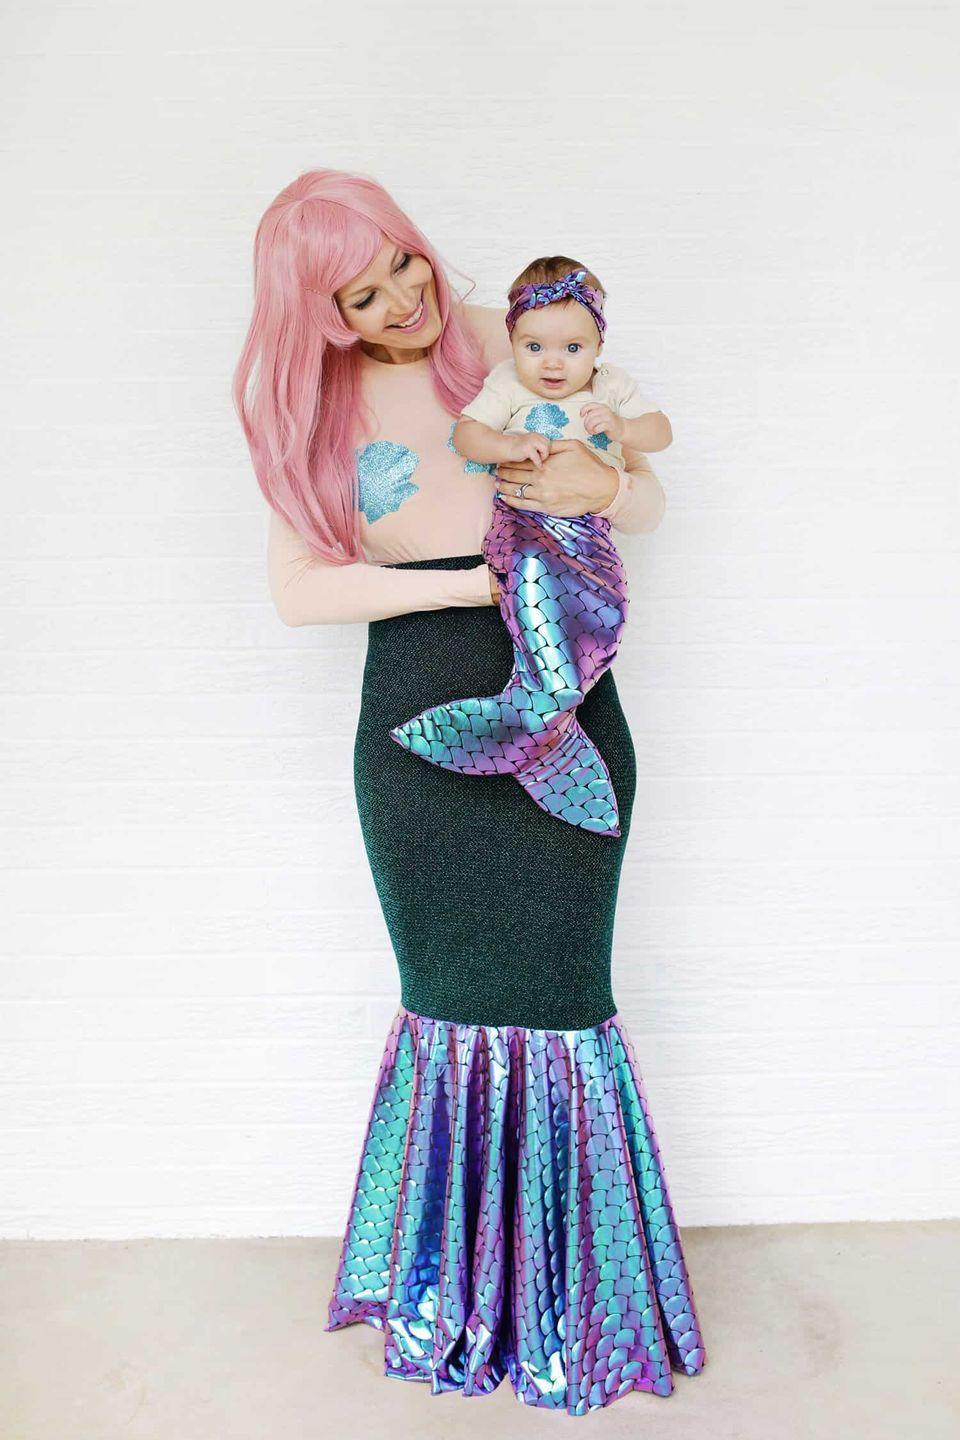 """<p>Of course, this is a mom and daughter, but it's totally adaptable to you and your BFF. Plus, you'll still be able to walk around even though you've got a fishtail! </p><p><strong>Get the tutorial <a href=""""https://abeautifulmess.com/2017/10/mother-daughter-mermaid-costume-diy.html"""" rel=""""nofollow noopener"""" target=""""_blank"""" data-ylk=""""slk:A Beautiful Mess"""" class=""""link rapid-noclick-resp"""">A Beautiful Mess</a>.</strong></p><p><a class=""""link rapid-noclick-resp"""" href=""""https://www.amazon.com/Iridescent-Material-Cuttable-Clothing-Decorations/dp/B07X31P7J6/ref=sr_1_2?dchild=1&keywords=iridescent%2Bfabric&qid=1591988161&sr=8-2&th=1&tag=syn-yahoo-20&ascsubtag=%5Bartid%7C10050.g.21349110%5Bsrc%7Cyahoo-us"""" rel=""""nofollow noopener"""" target=""""_blank"""" data-ylk=""""slk:SHOP IRIDESCENT FABRIC"""">SHOP IRIDESCENT FABRIC</a></p>"""